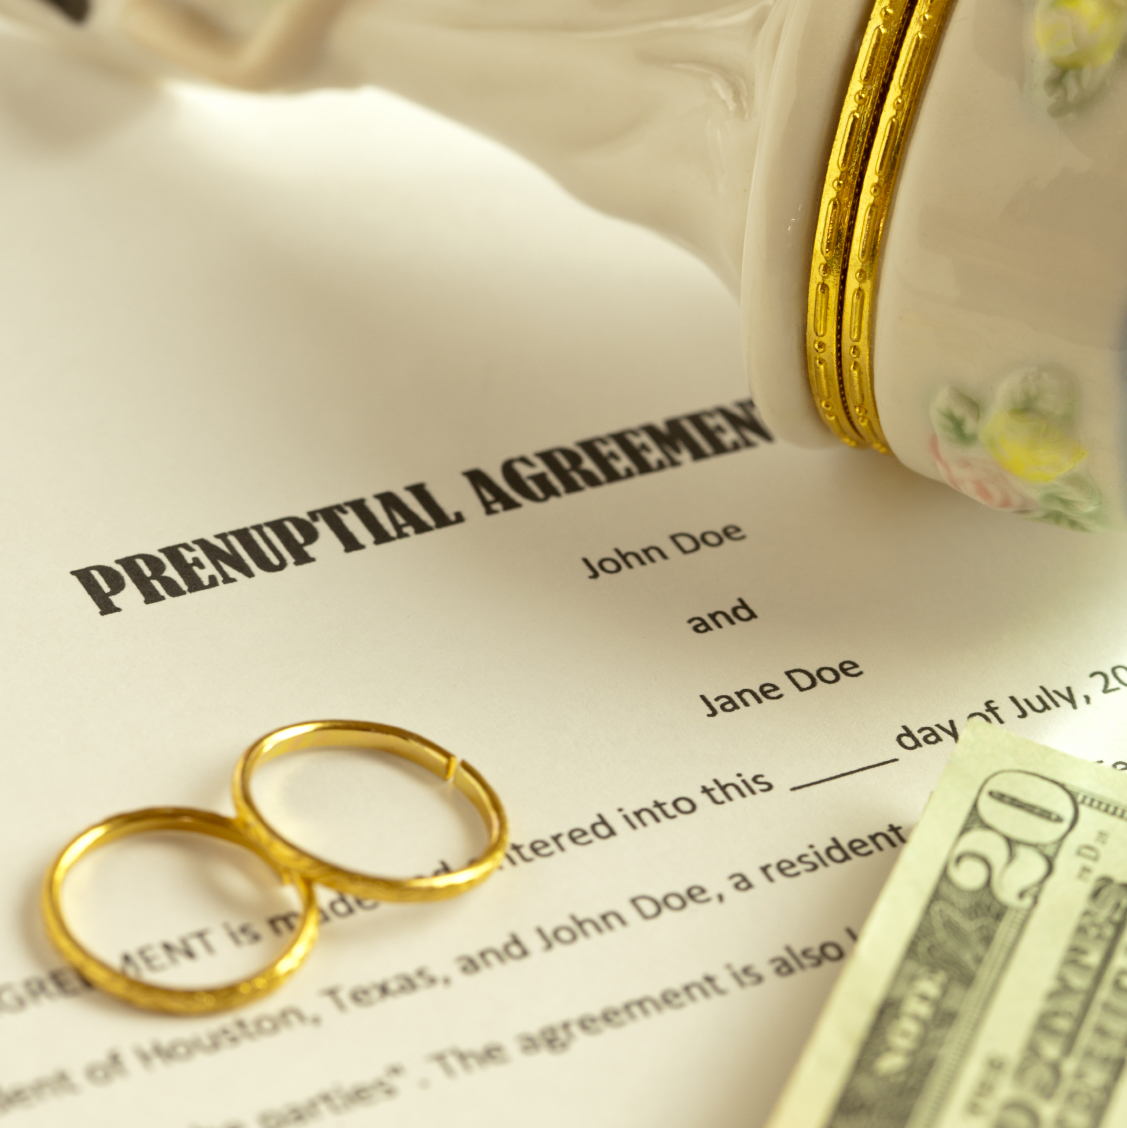 Protecting Your Business With A Prenup Business